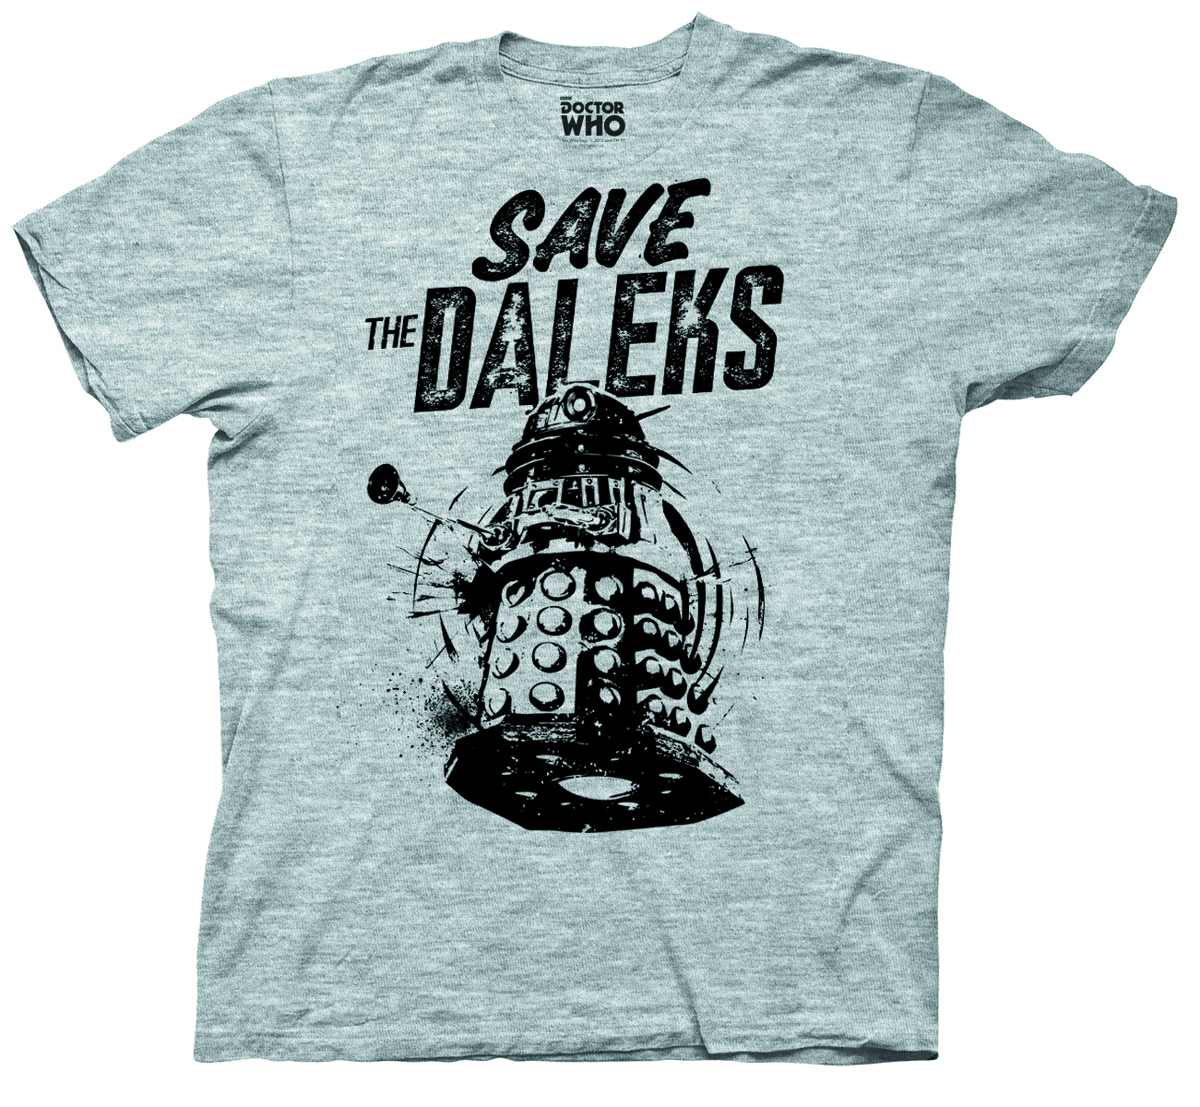 DOCTOR WHO SAVE THE DALEKS GRAY T/S XL